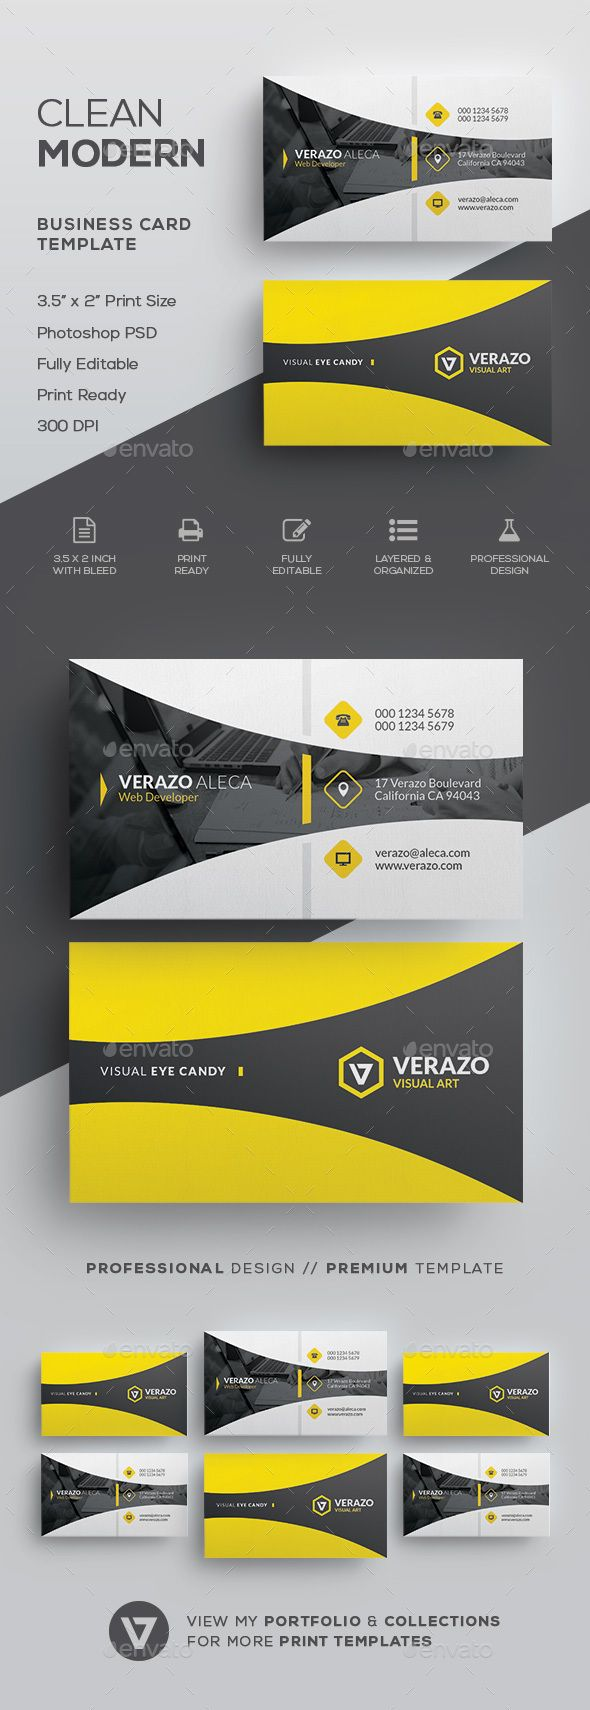 Best 25 vinyl banner ideas images on pinterest business card clean modern business card template flashek Image collections